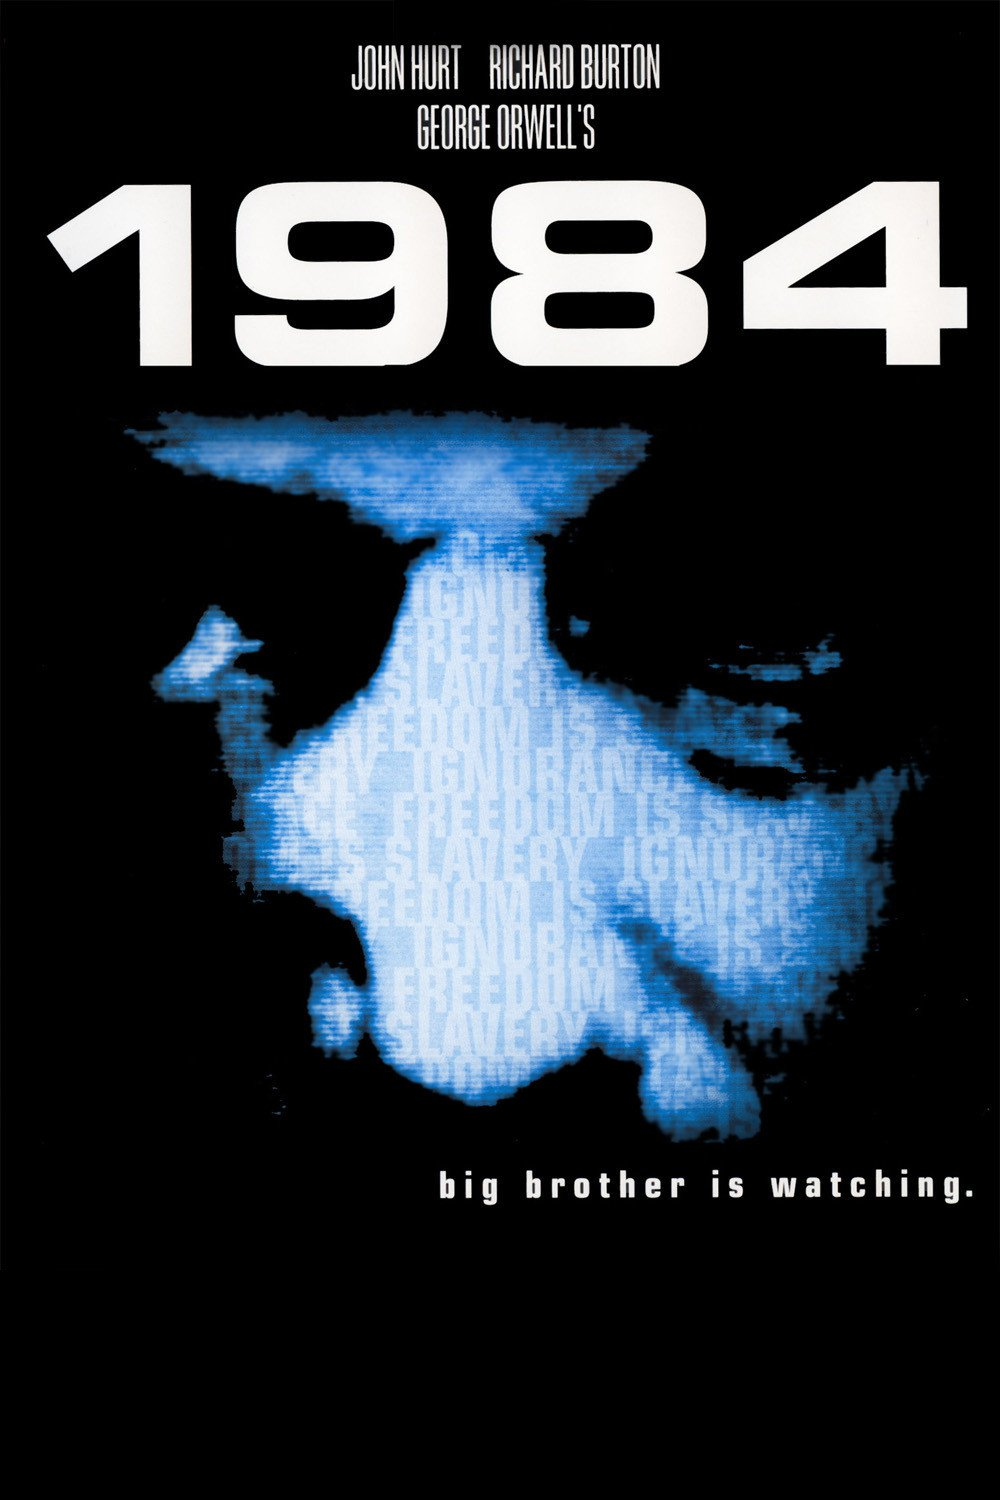 an analysis of orwells 1984 a novel of a totalitarian future society Symbolic interpretation of 1984 1984 is a revolutionary political novel  the story portrays the possible future of a society if  1984 symbols and meanings.